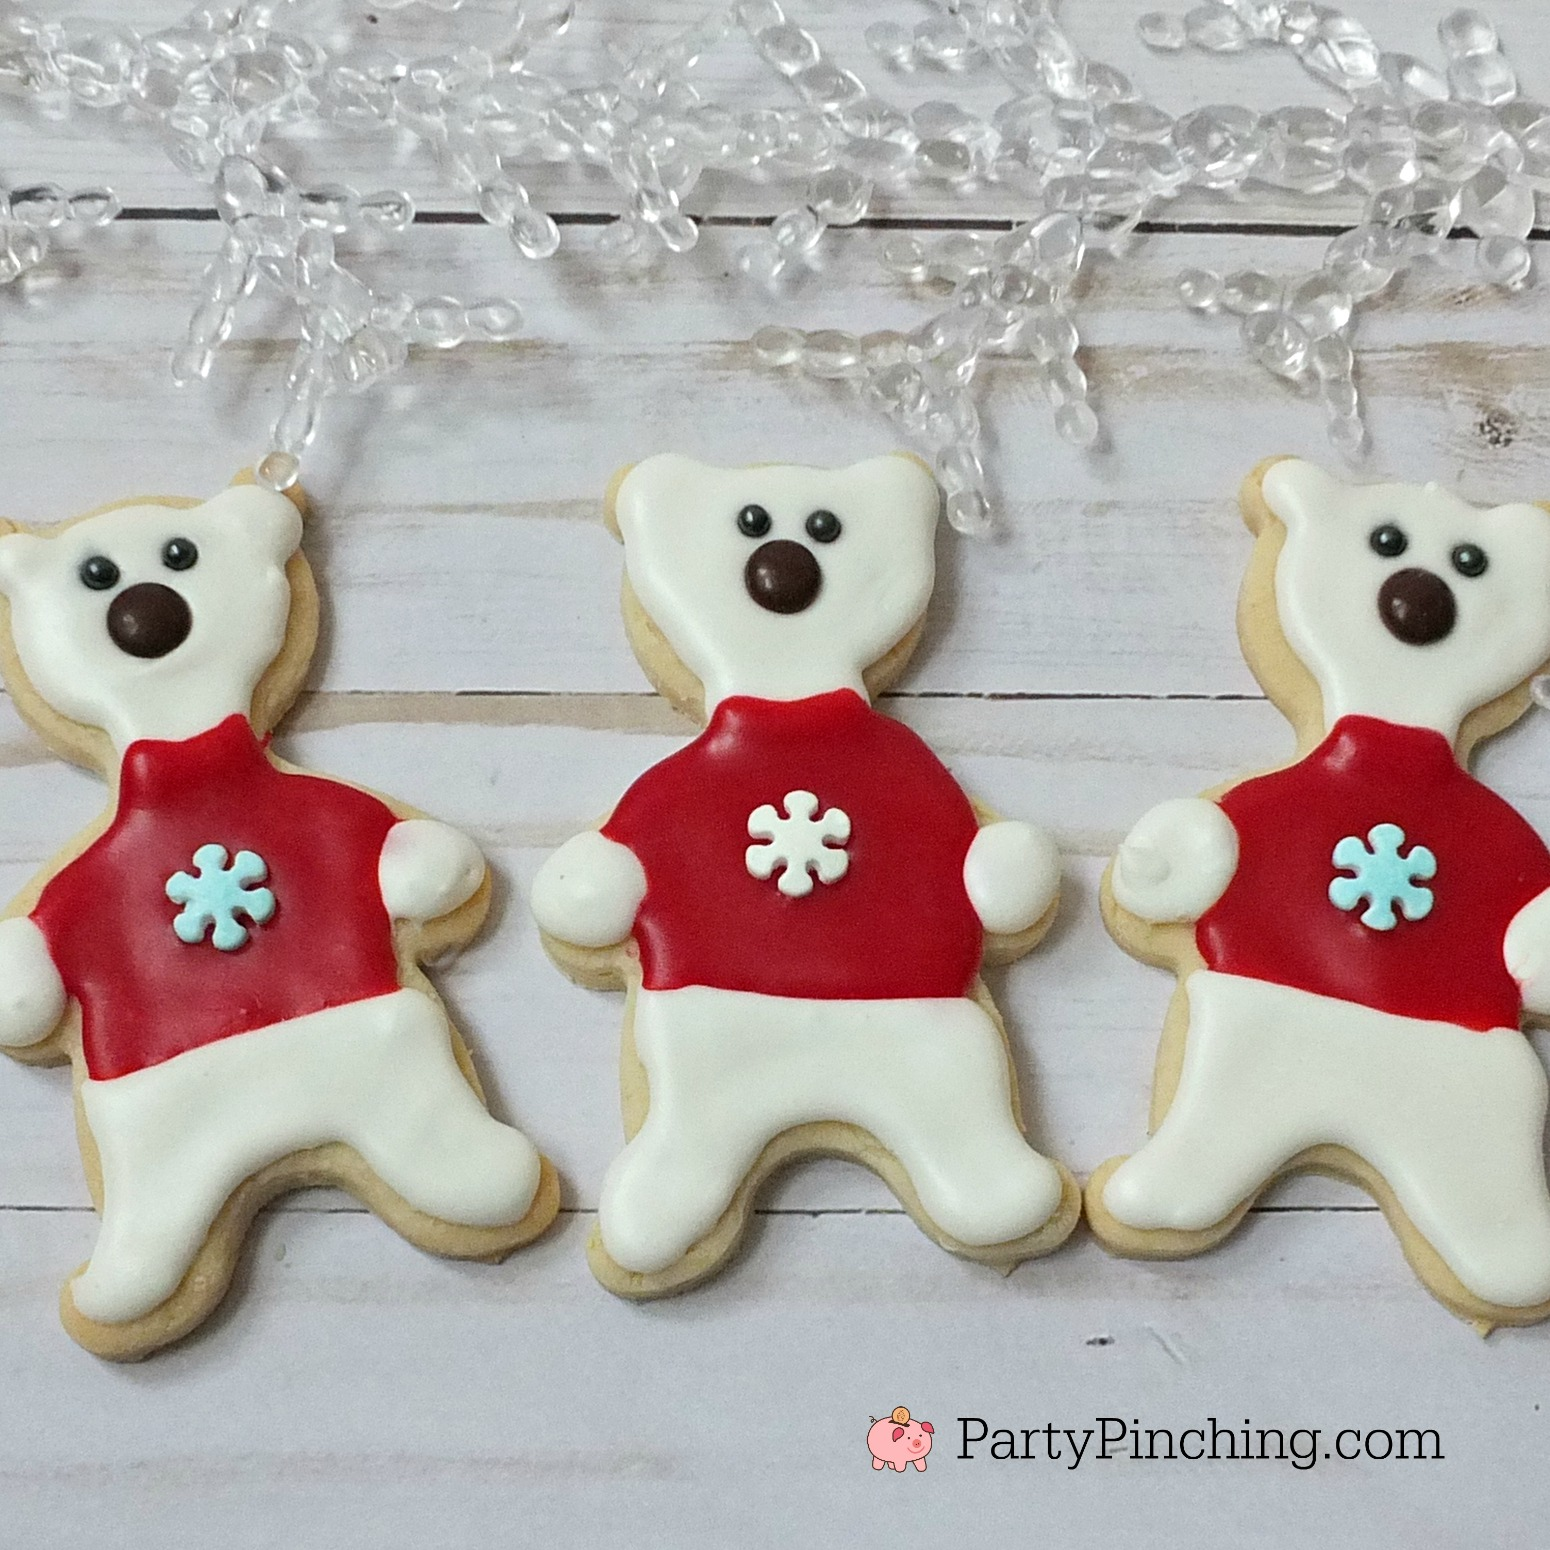 Polar bear cookies, cute polar bear cookies, winter Christmas cookies, fun food for kids, sweet treats, bear cookies, bears with sweater cookies, adorable cookie ideas